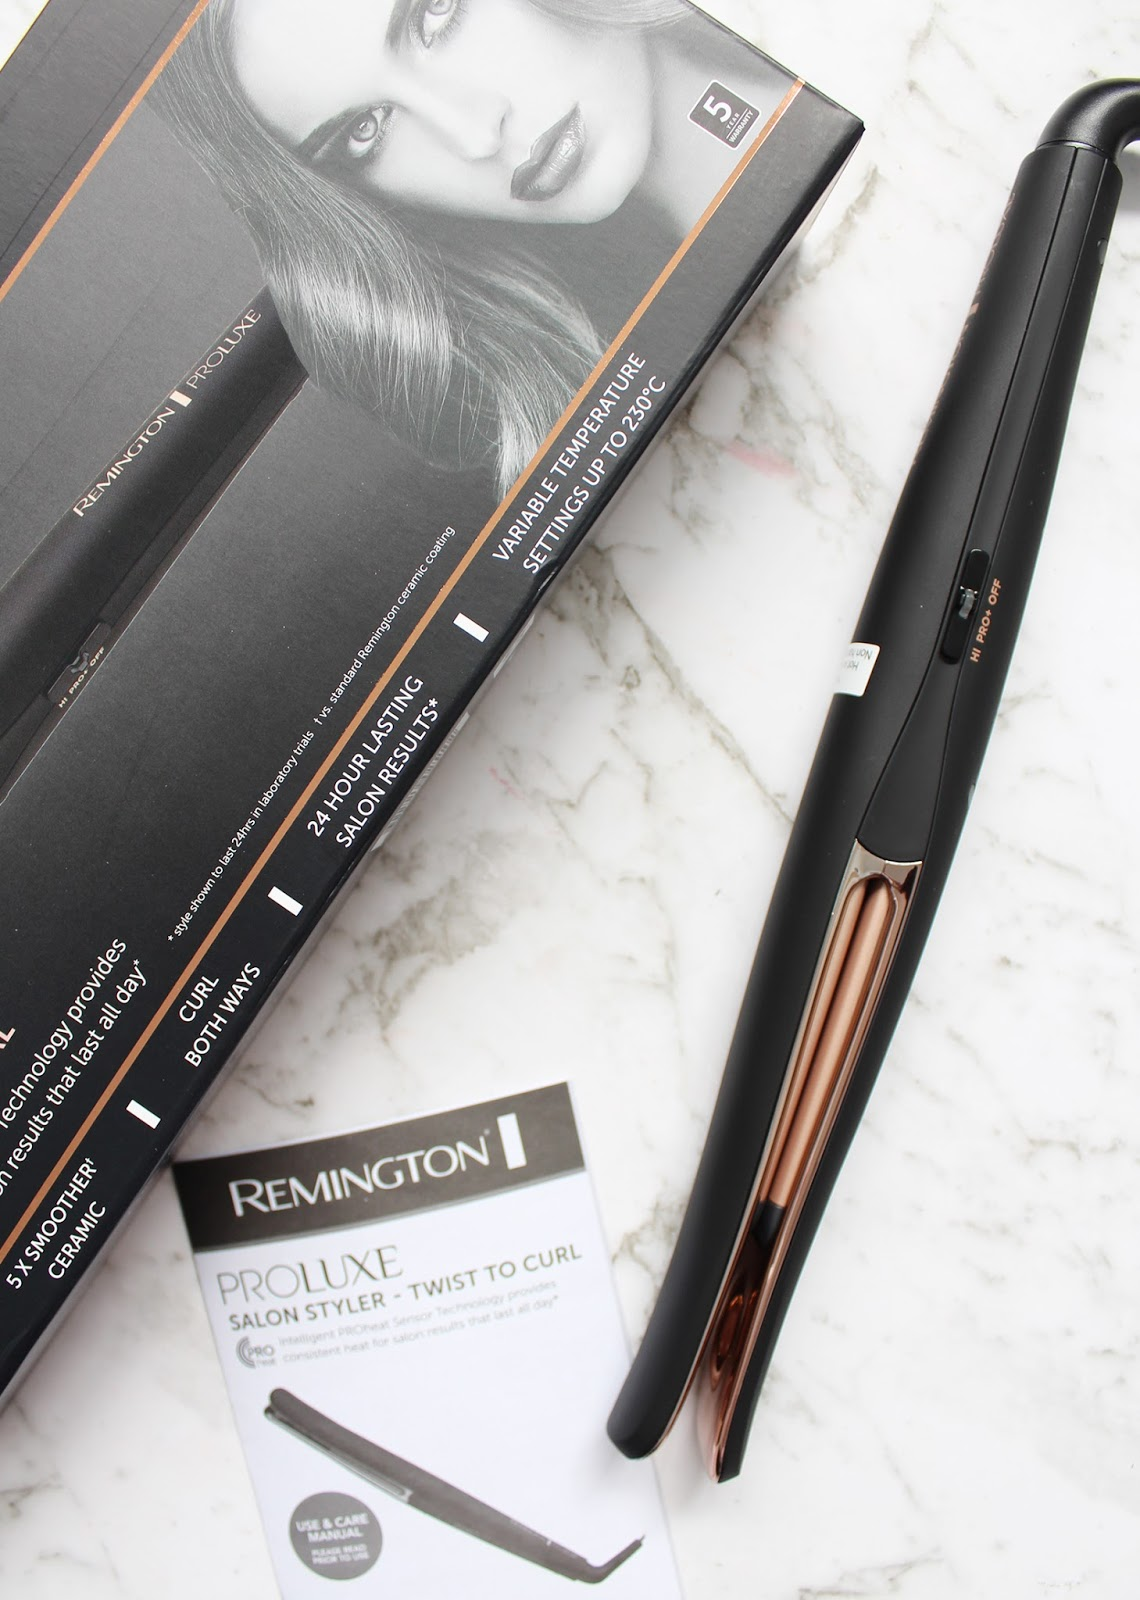 REMINGTON | Proluxe Salon Styler Twist to Curl - Review - CassandraMyee